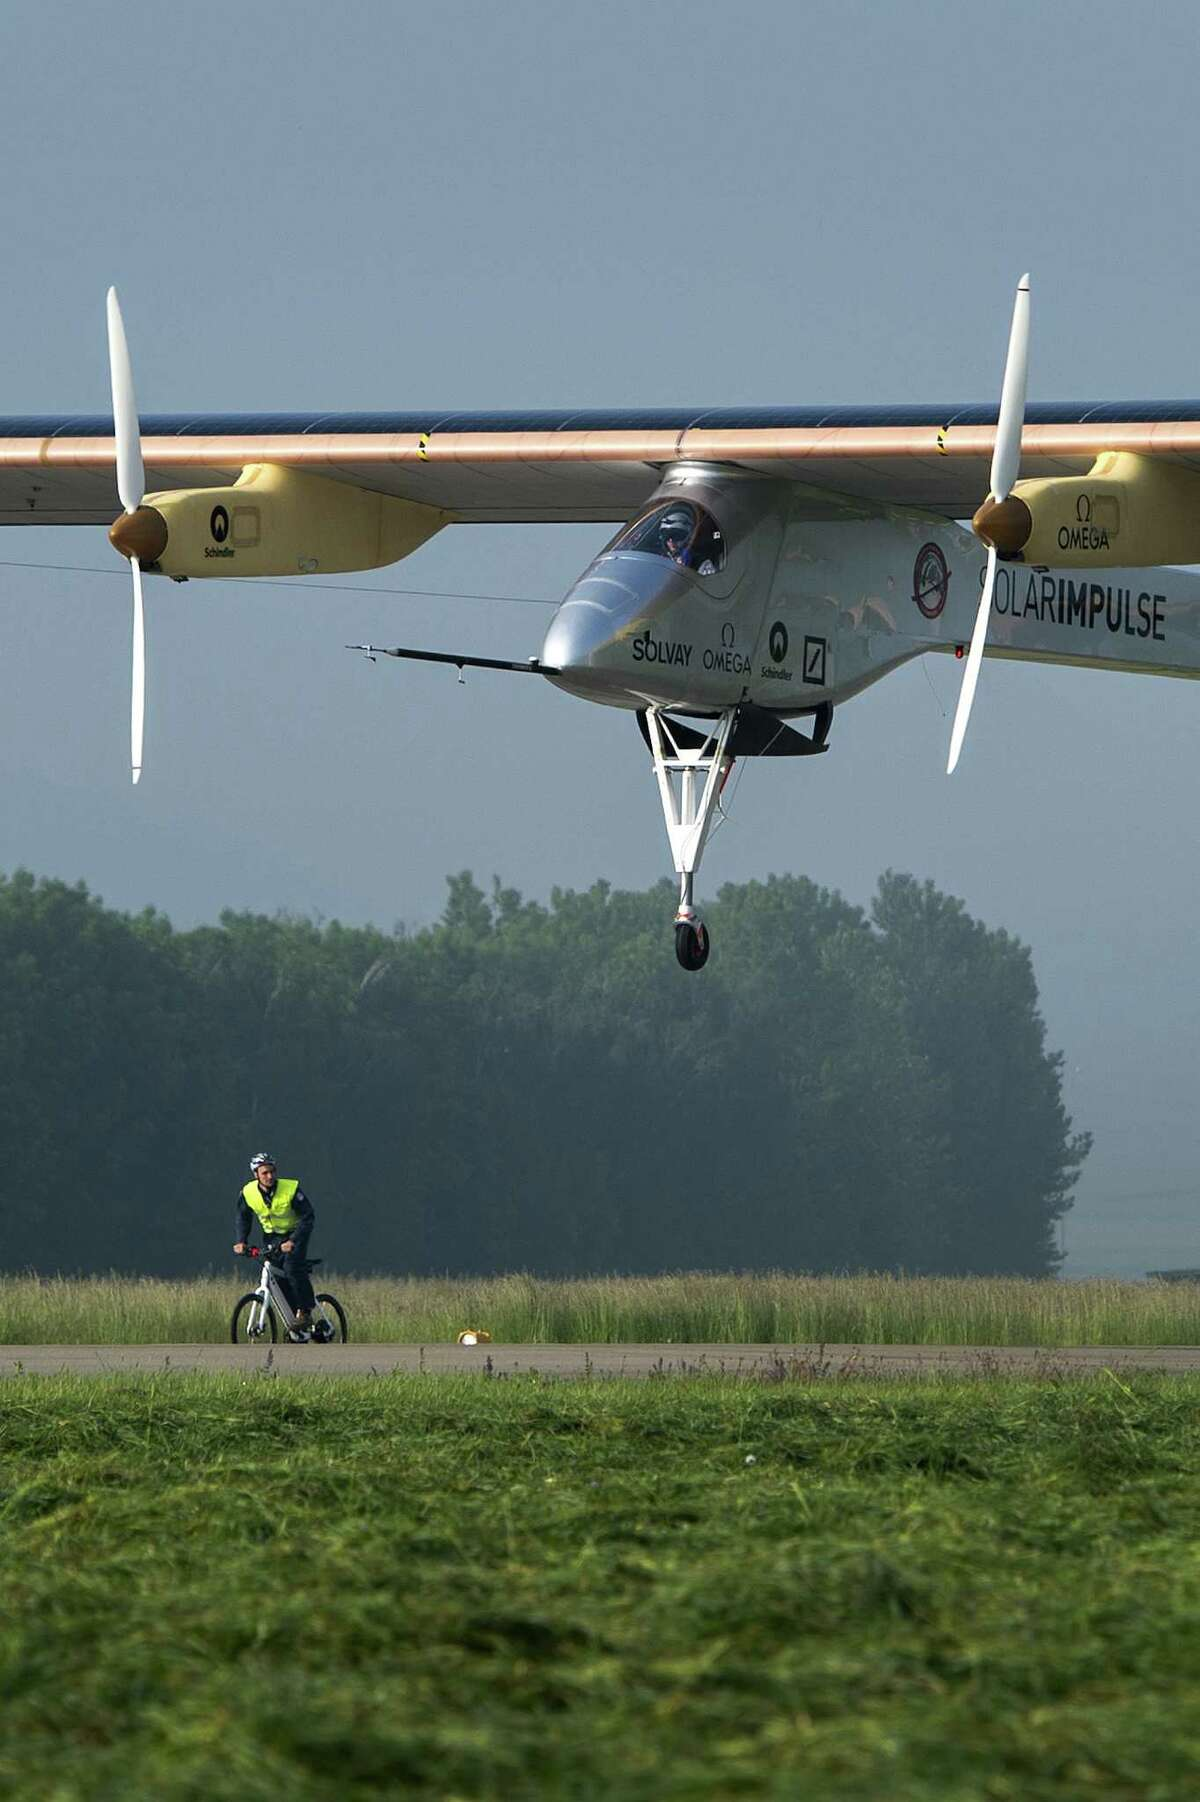 The Swiss sun-powered aircraft Solar Impulse takes off on May 24, 2012 in Payerne on its first attempted intercontinental flight from Switzerland to Morocco. Solar Impulse, piloted by Andre Borschberg, is expected to land in Madrid for a stopover before heading to Morocco without using a drop of fuel. Bertrand Piccard will pilot the second leg on to Rabat, scheduled to leave Madrid on May 28 at the earliest. AFP PHOTO / FABRICE COFFRINIFABRICE COFFRINI/AFP/GettyImages